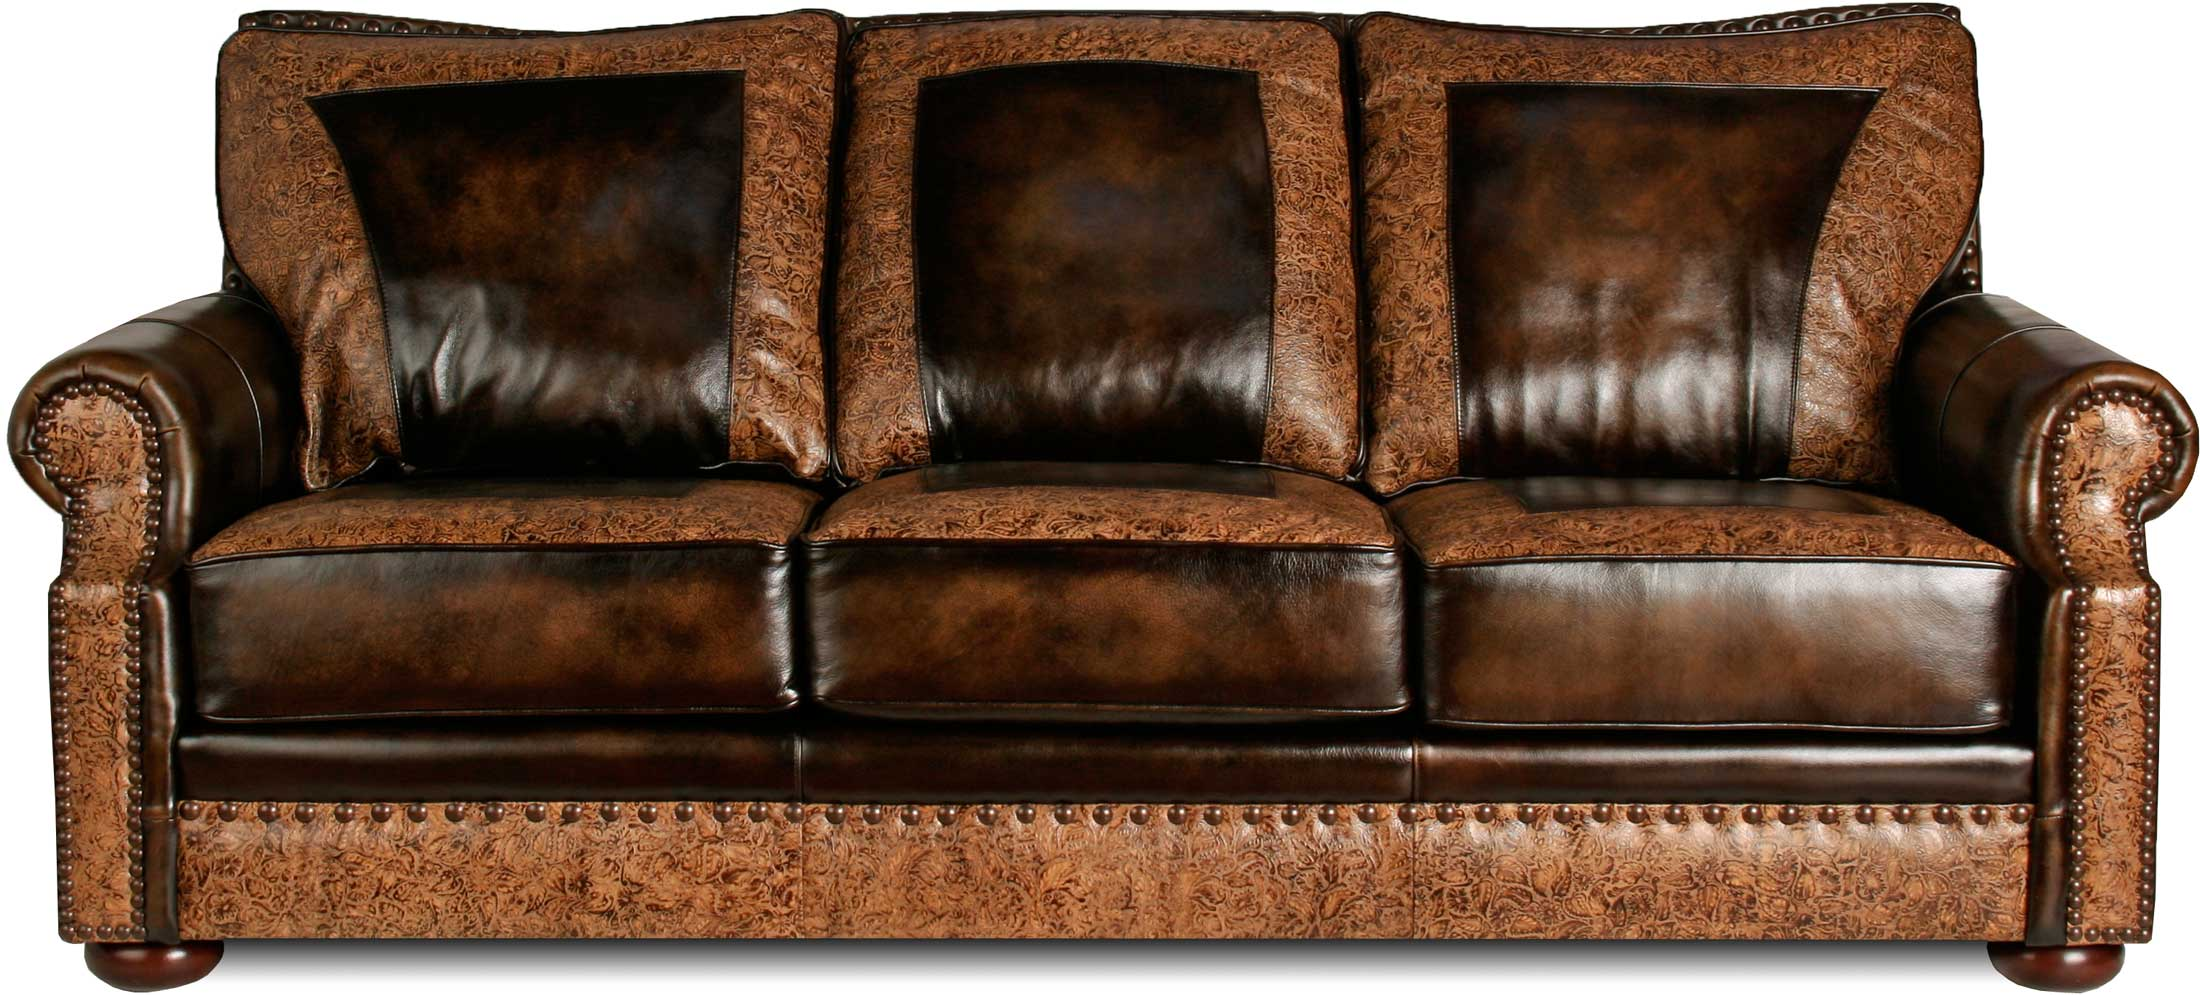 Texas leather furniture for Leather furniture